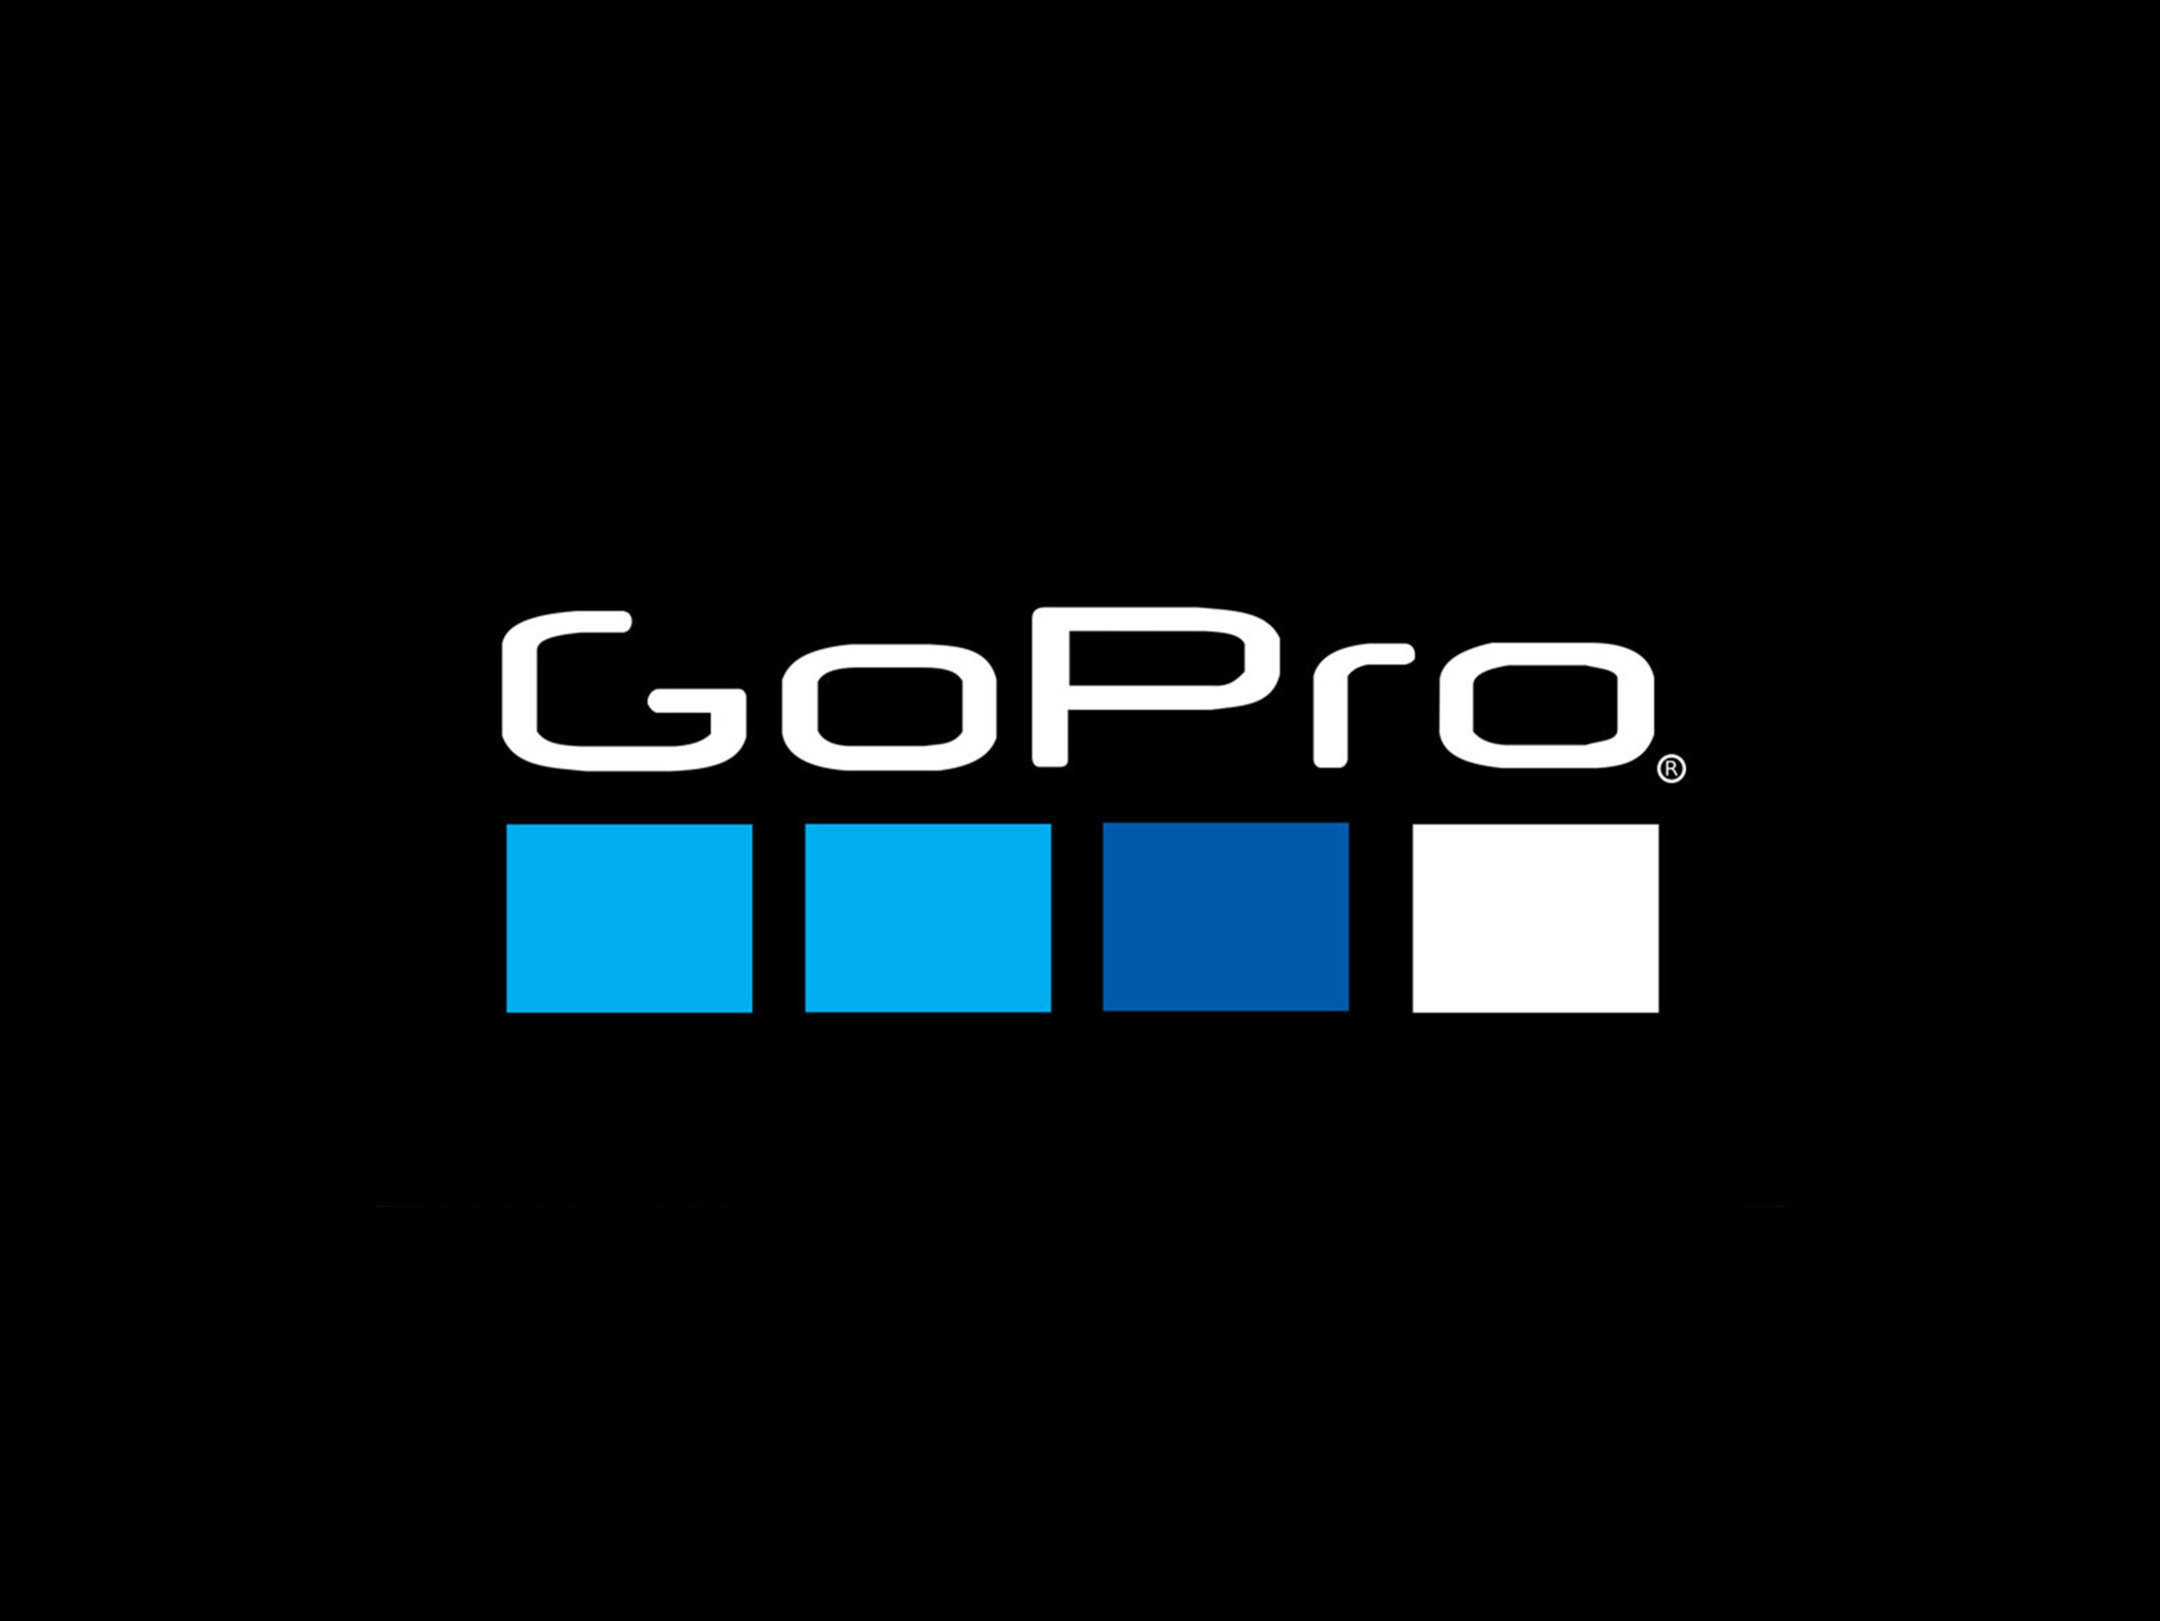 Gopro feat